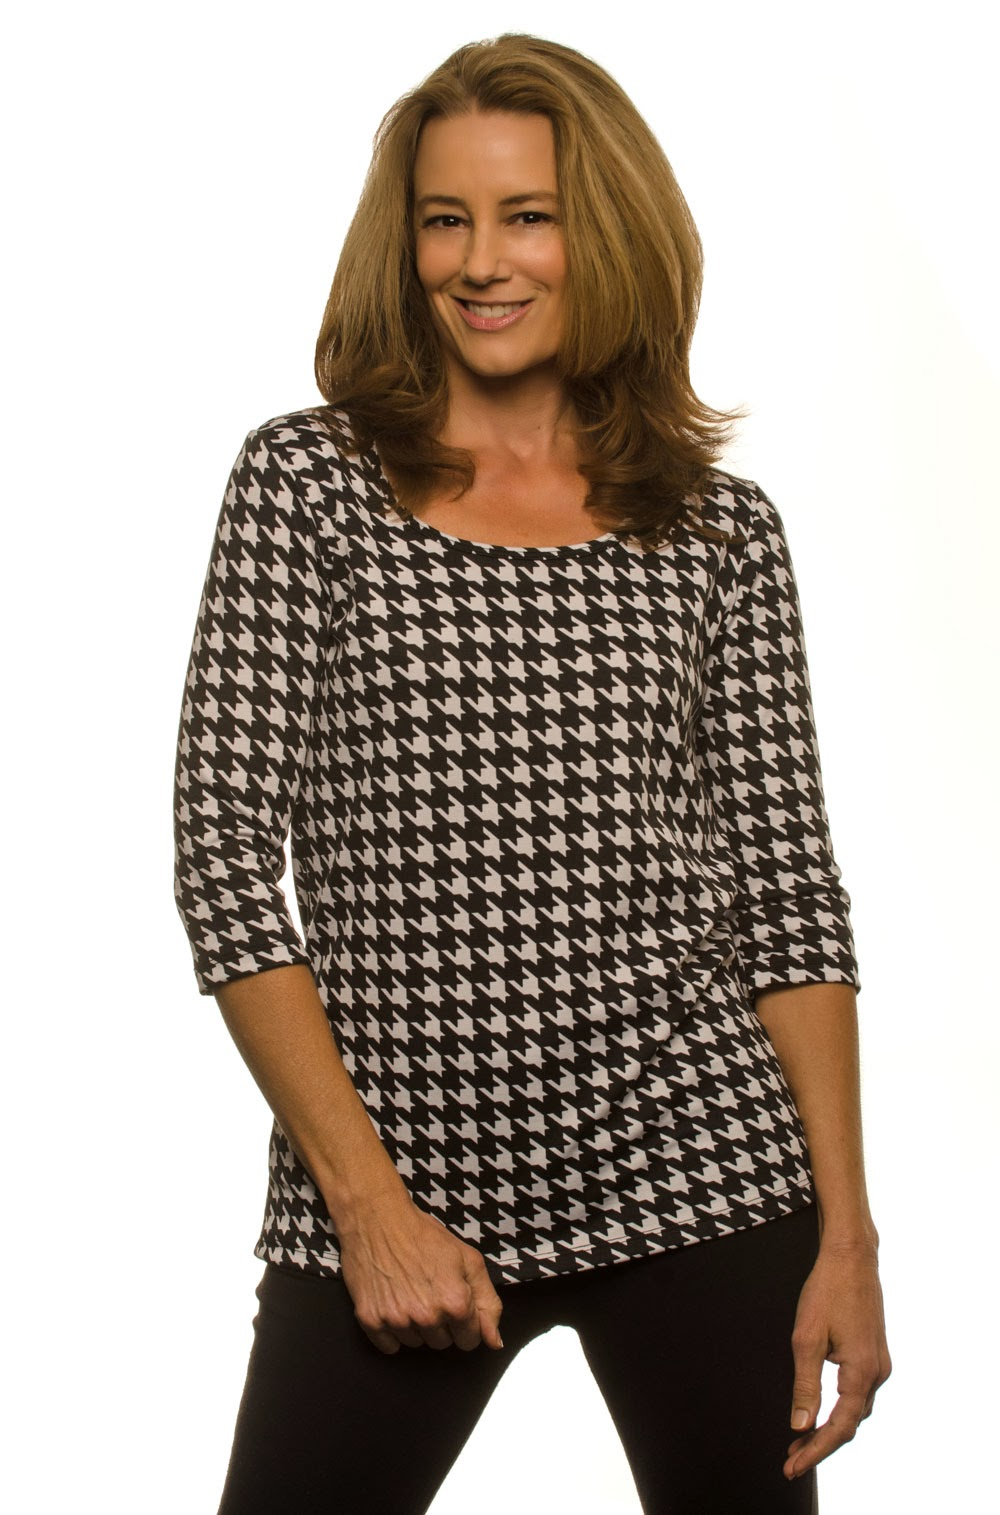 Stylish Clothes For Women Over 40 - Viewing Gallery